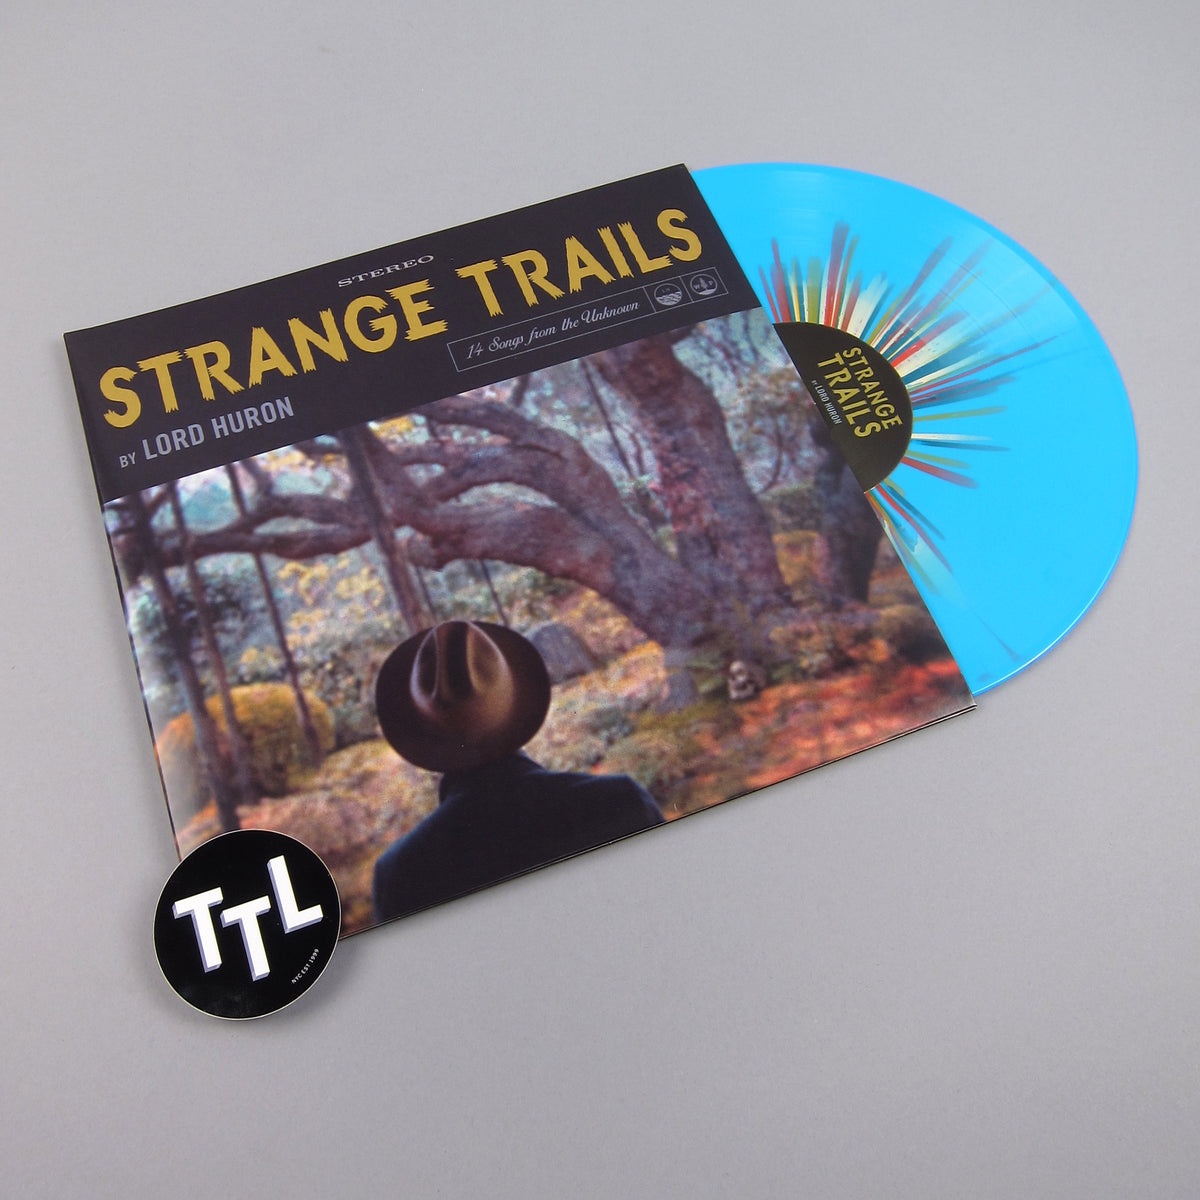 Lord Huron: Strange Trails (Splatter Color Vinyl) Vinyl 2LP - Turntable Lab Exclusive - LIMIT 2 PER CUSTOMER